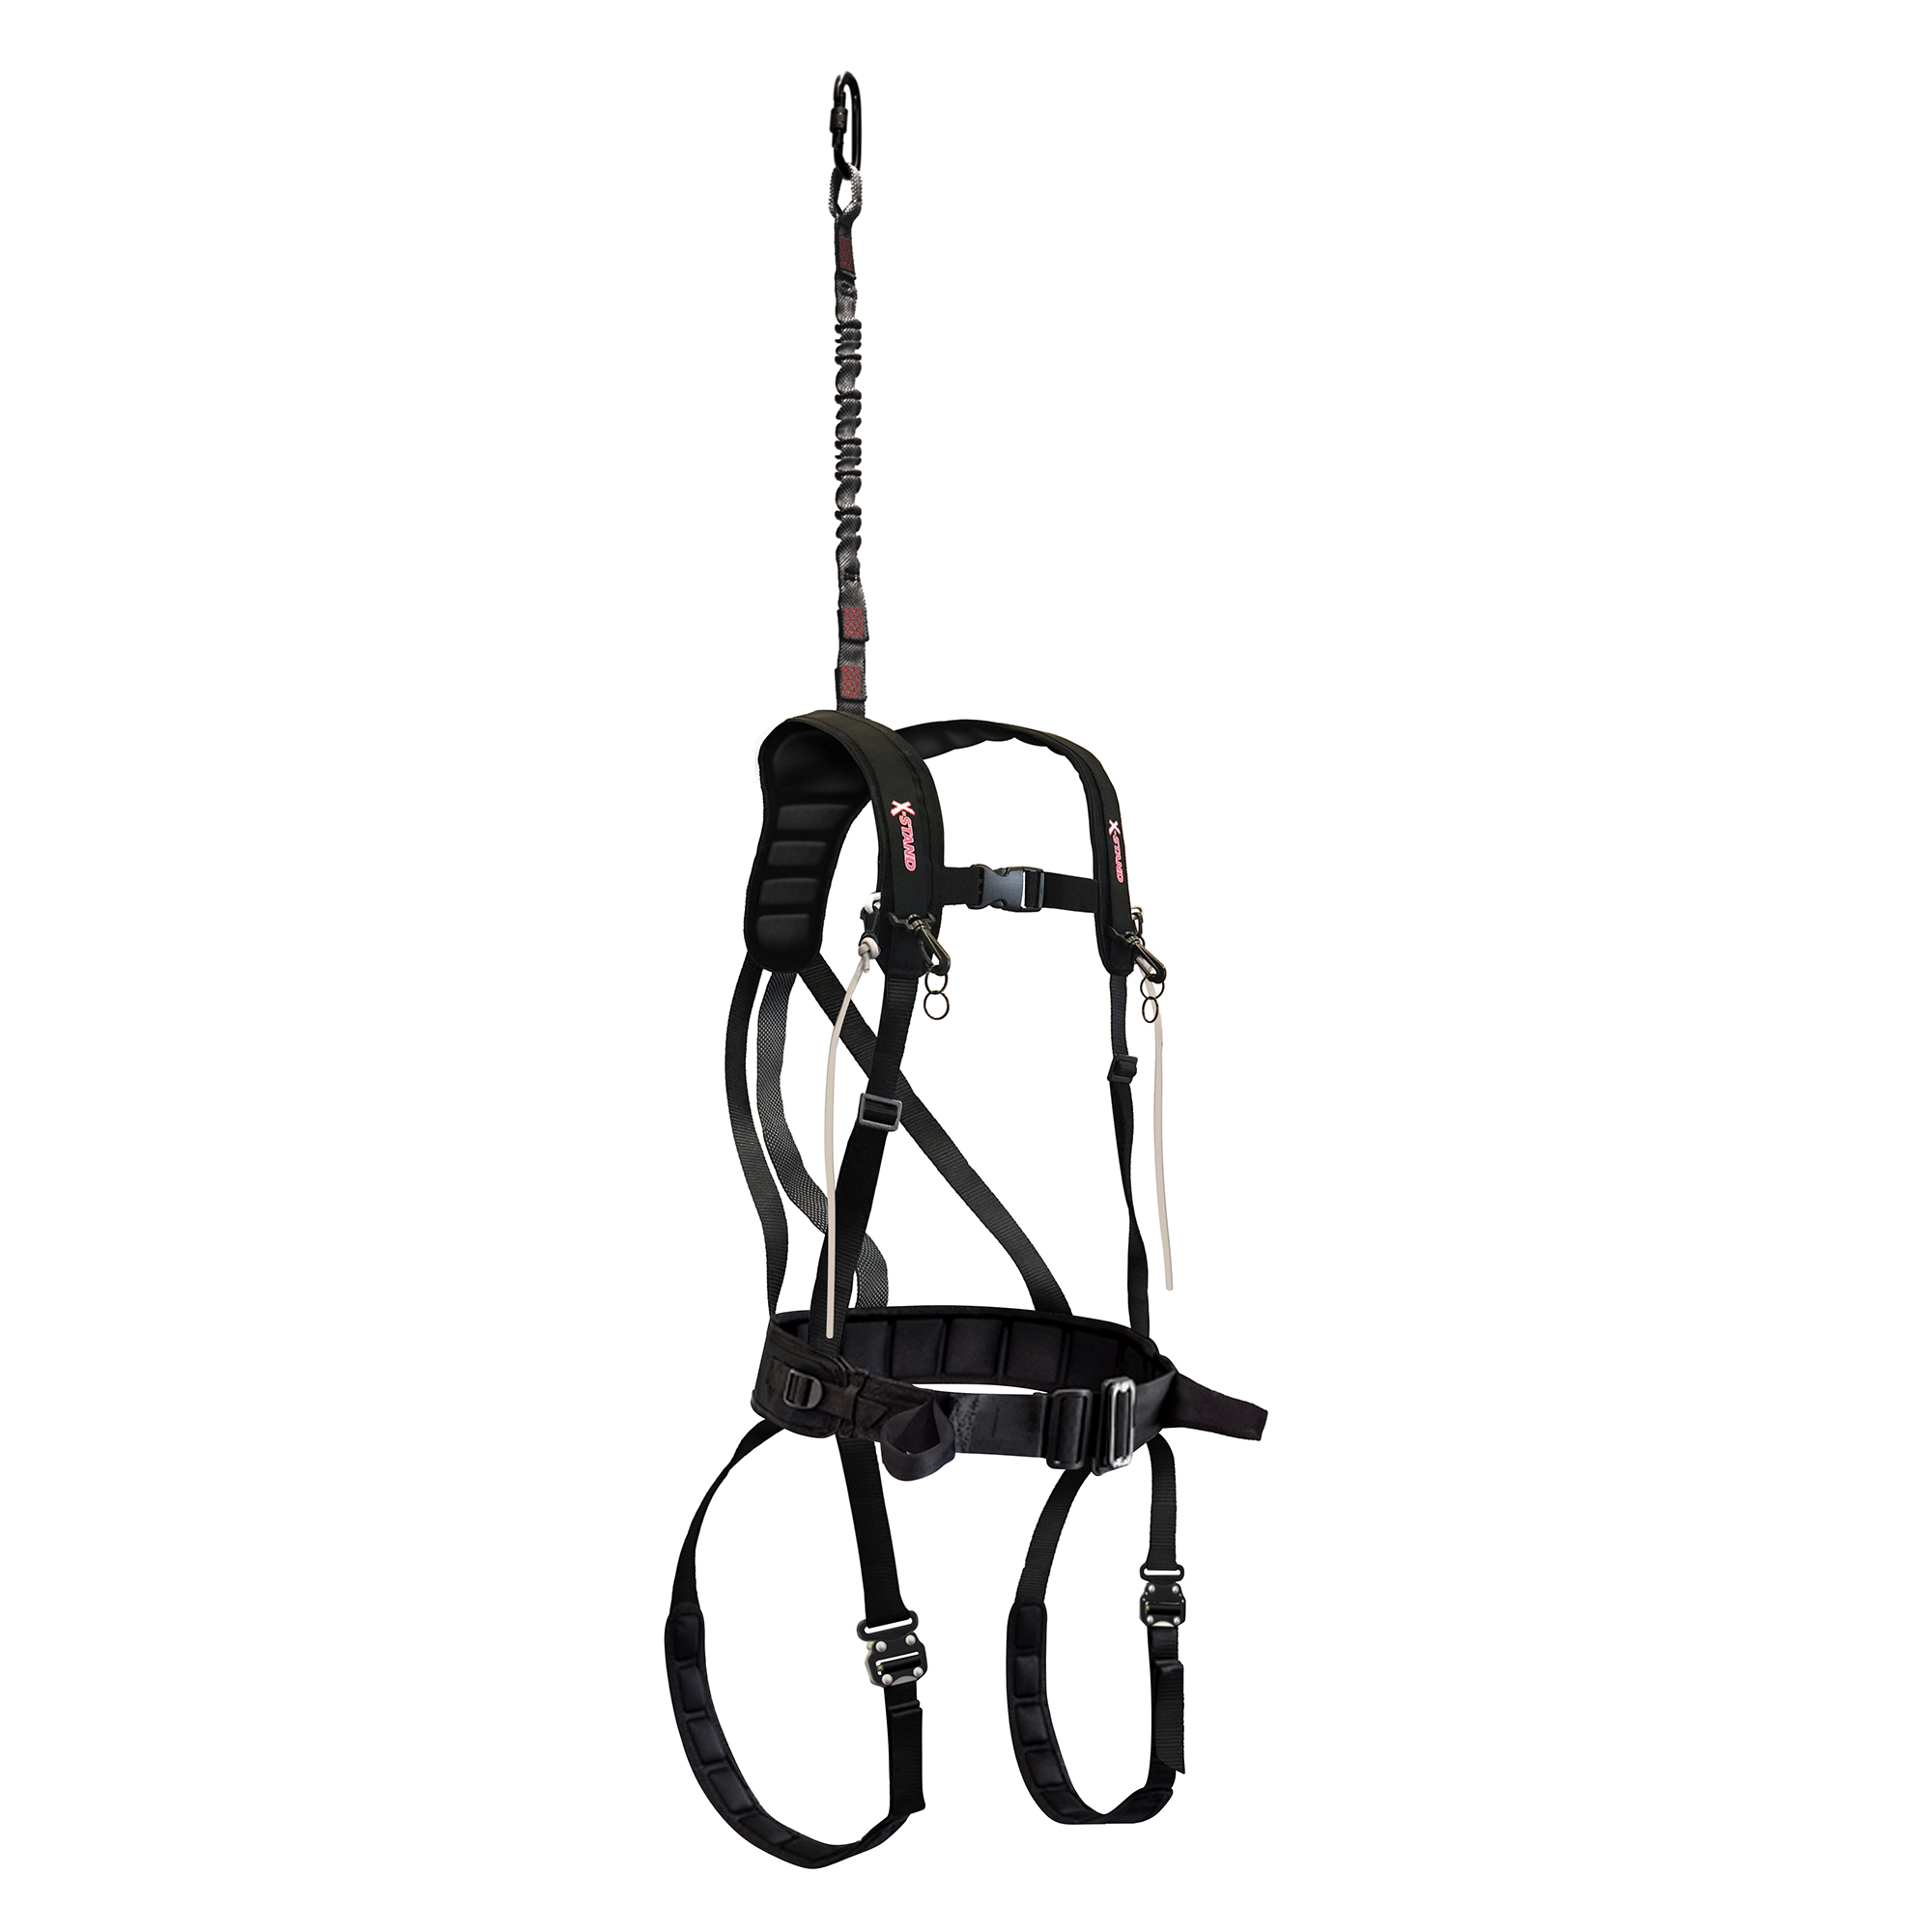 "X-Stand 28"" Waist Deer Hunting Tree Stand Safety Harness ..."